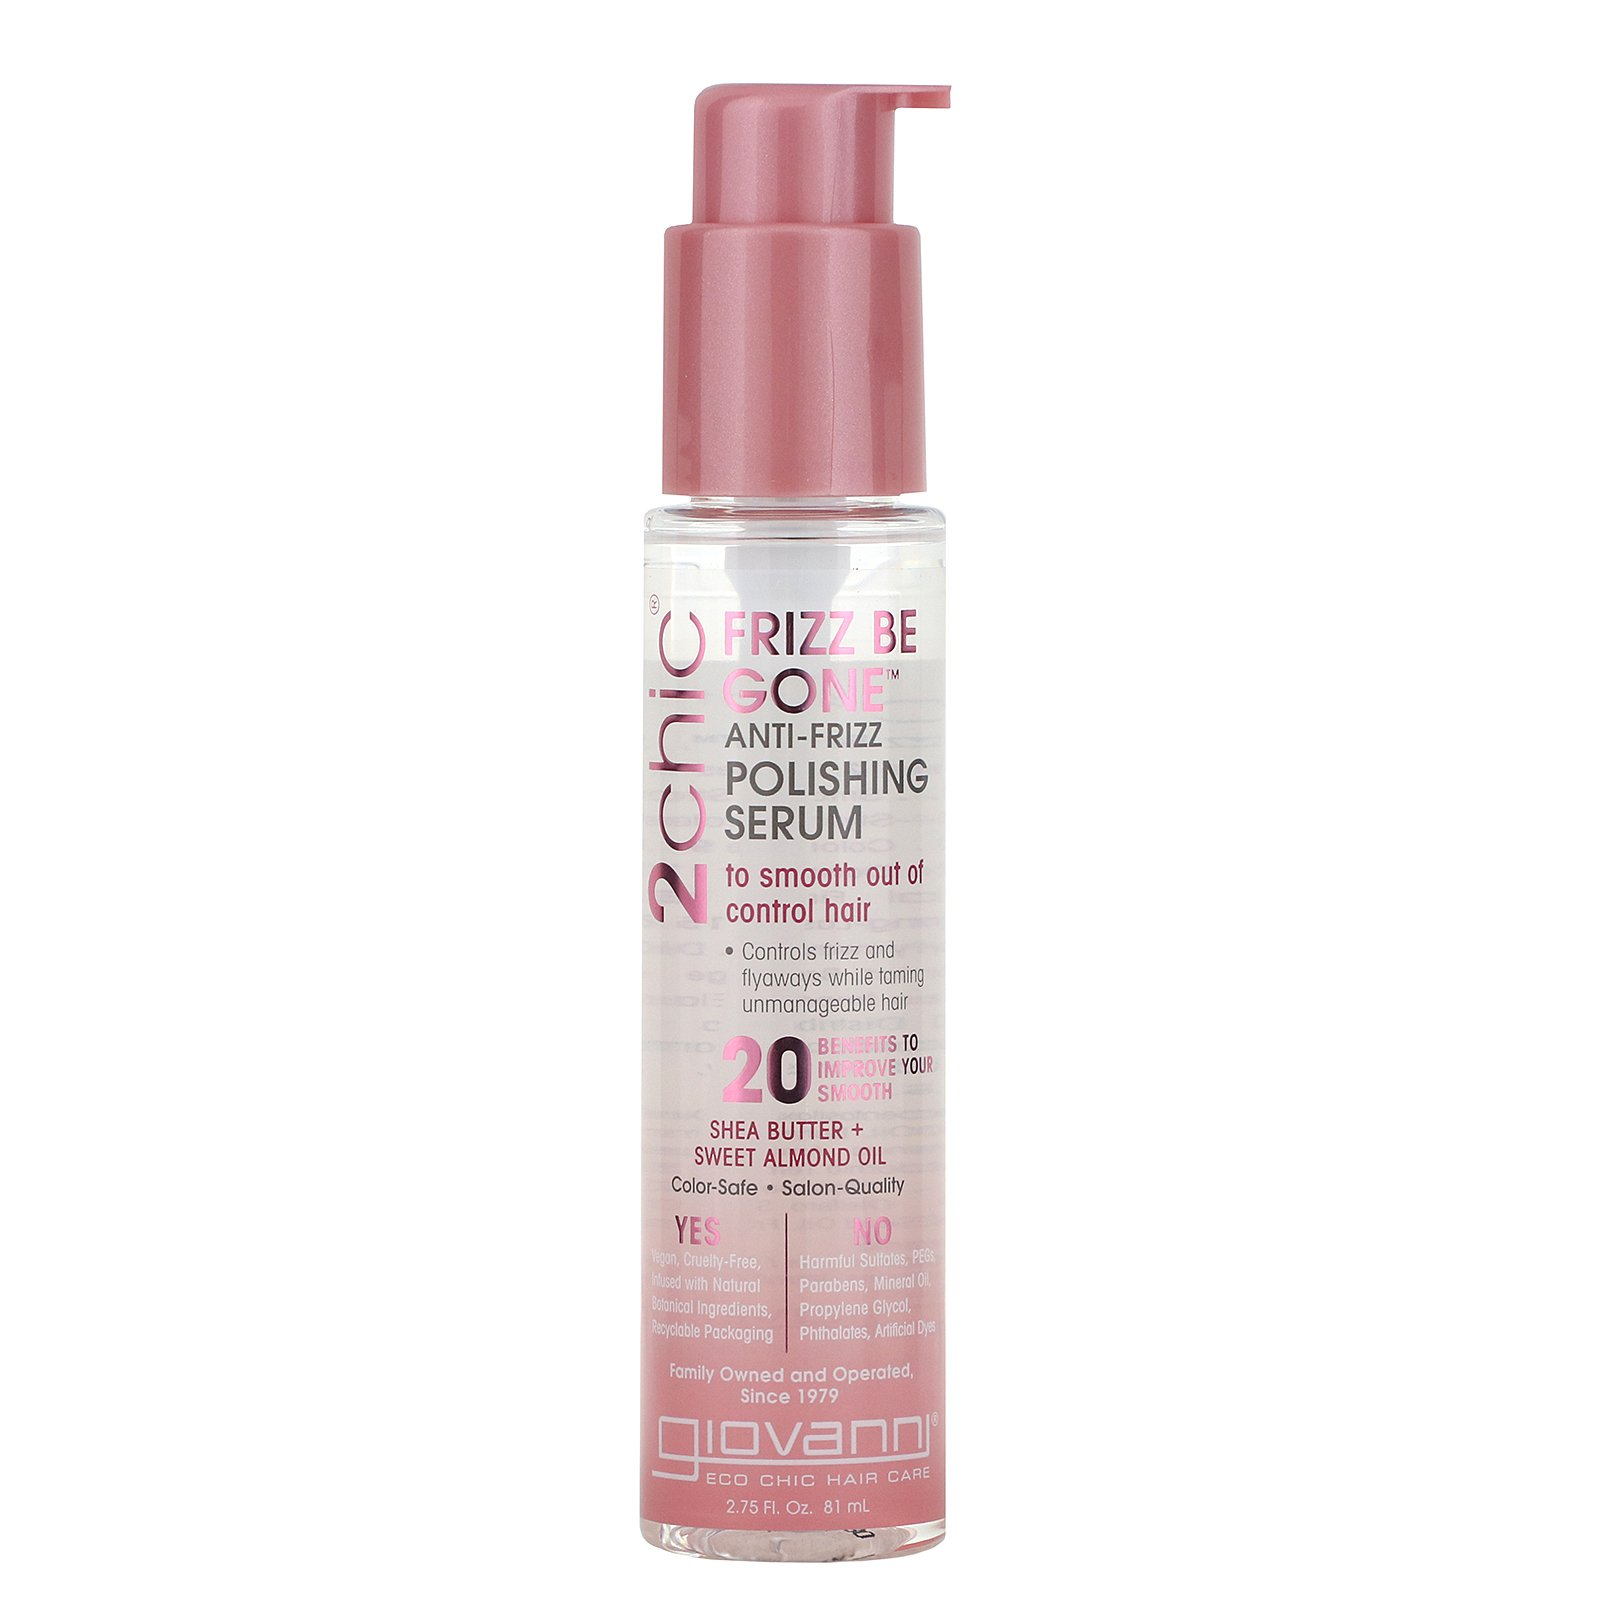 Image result for GIOVANNI COSMETICS: 2Chic Frizz Be Gone Polishing Serum